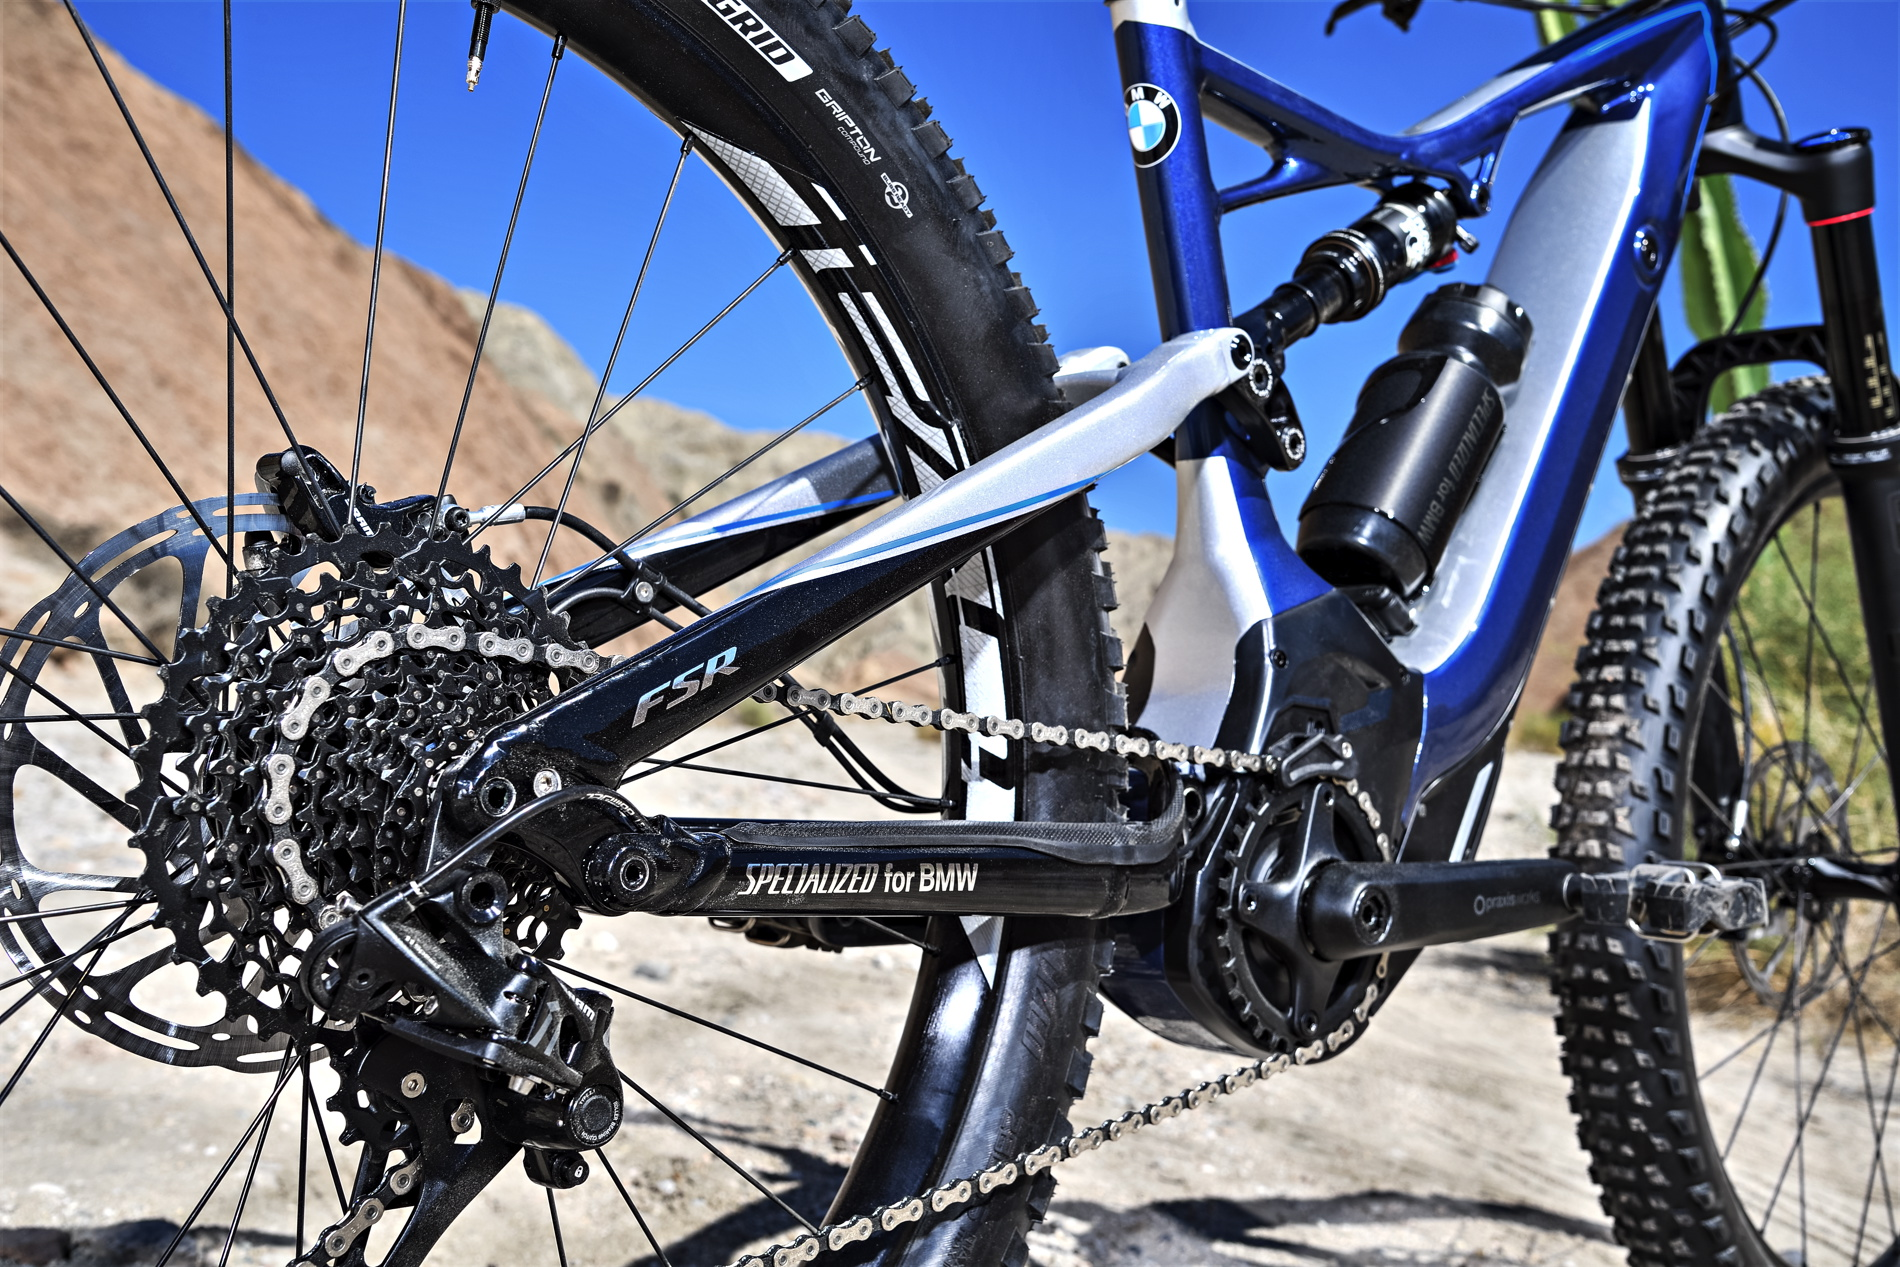 Bike Maker Specialized Launches The Bmw Turbo Levo Fsr 6fattie